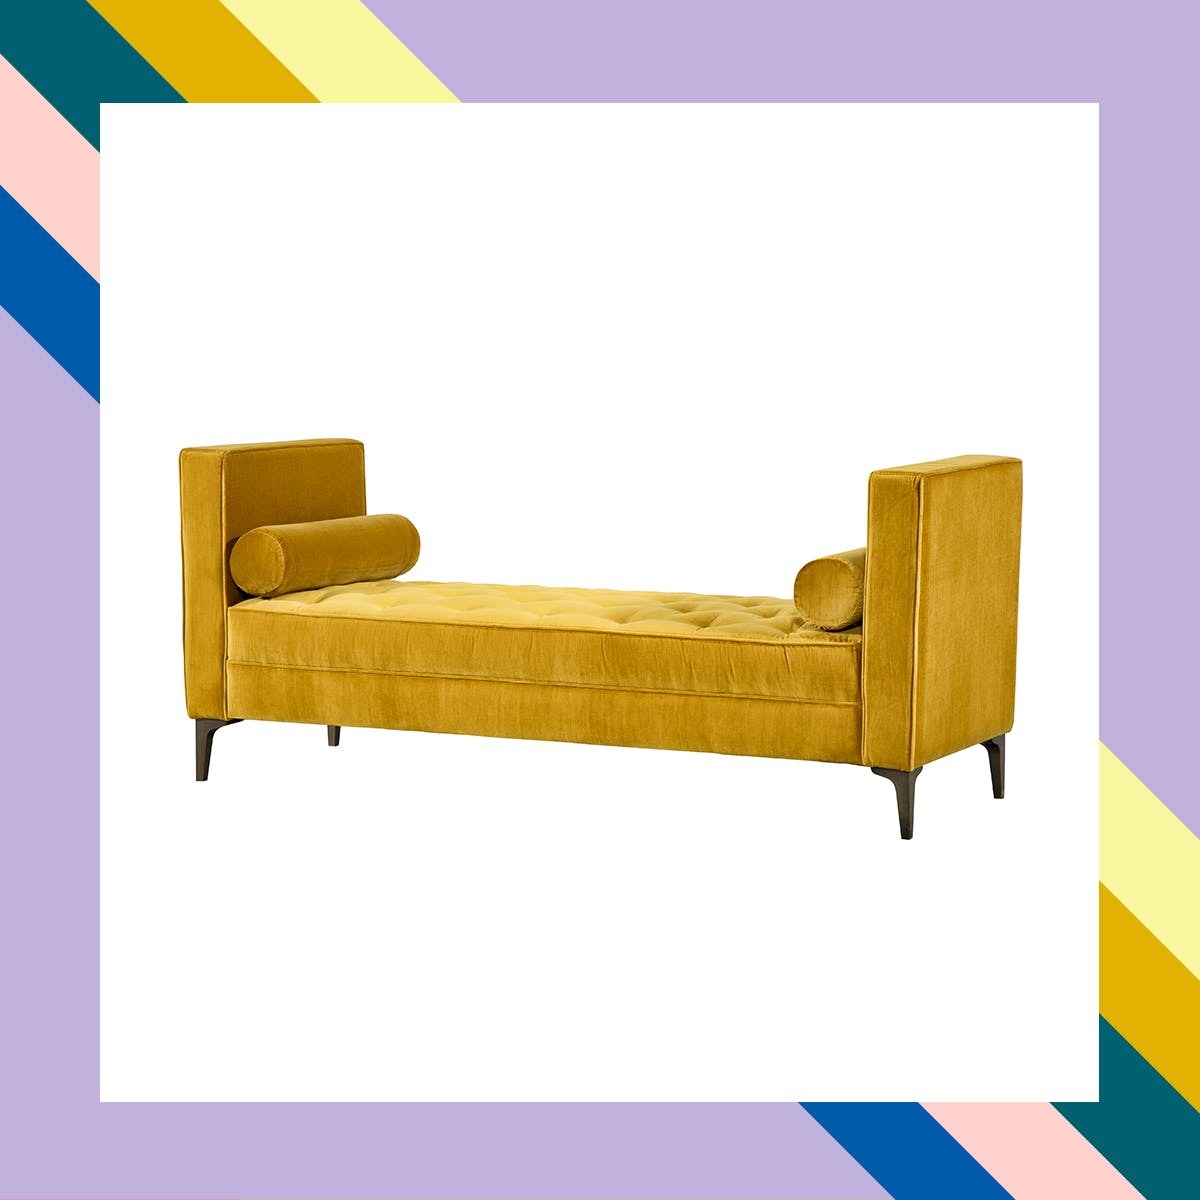 Most Recent Nate Berkus Just Launched A Home Collection With Hubby Jeremiah Pertaining To Matteo Arm Sofa Chairs By Nate Berkus And Jeremiah Brent (View 12 of 20)